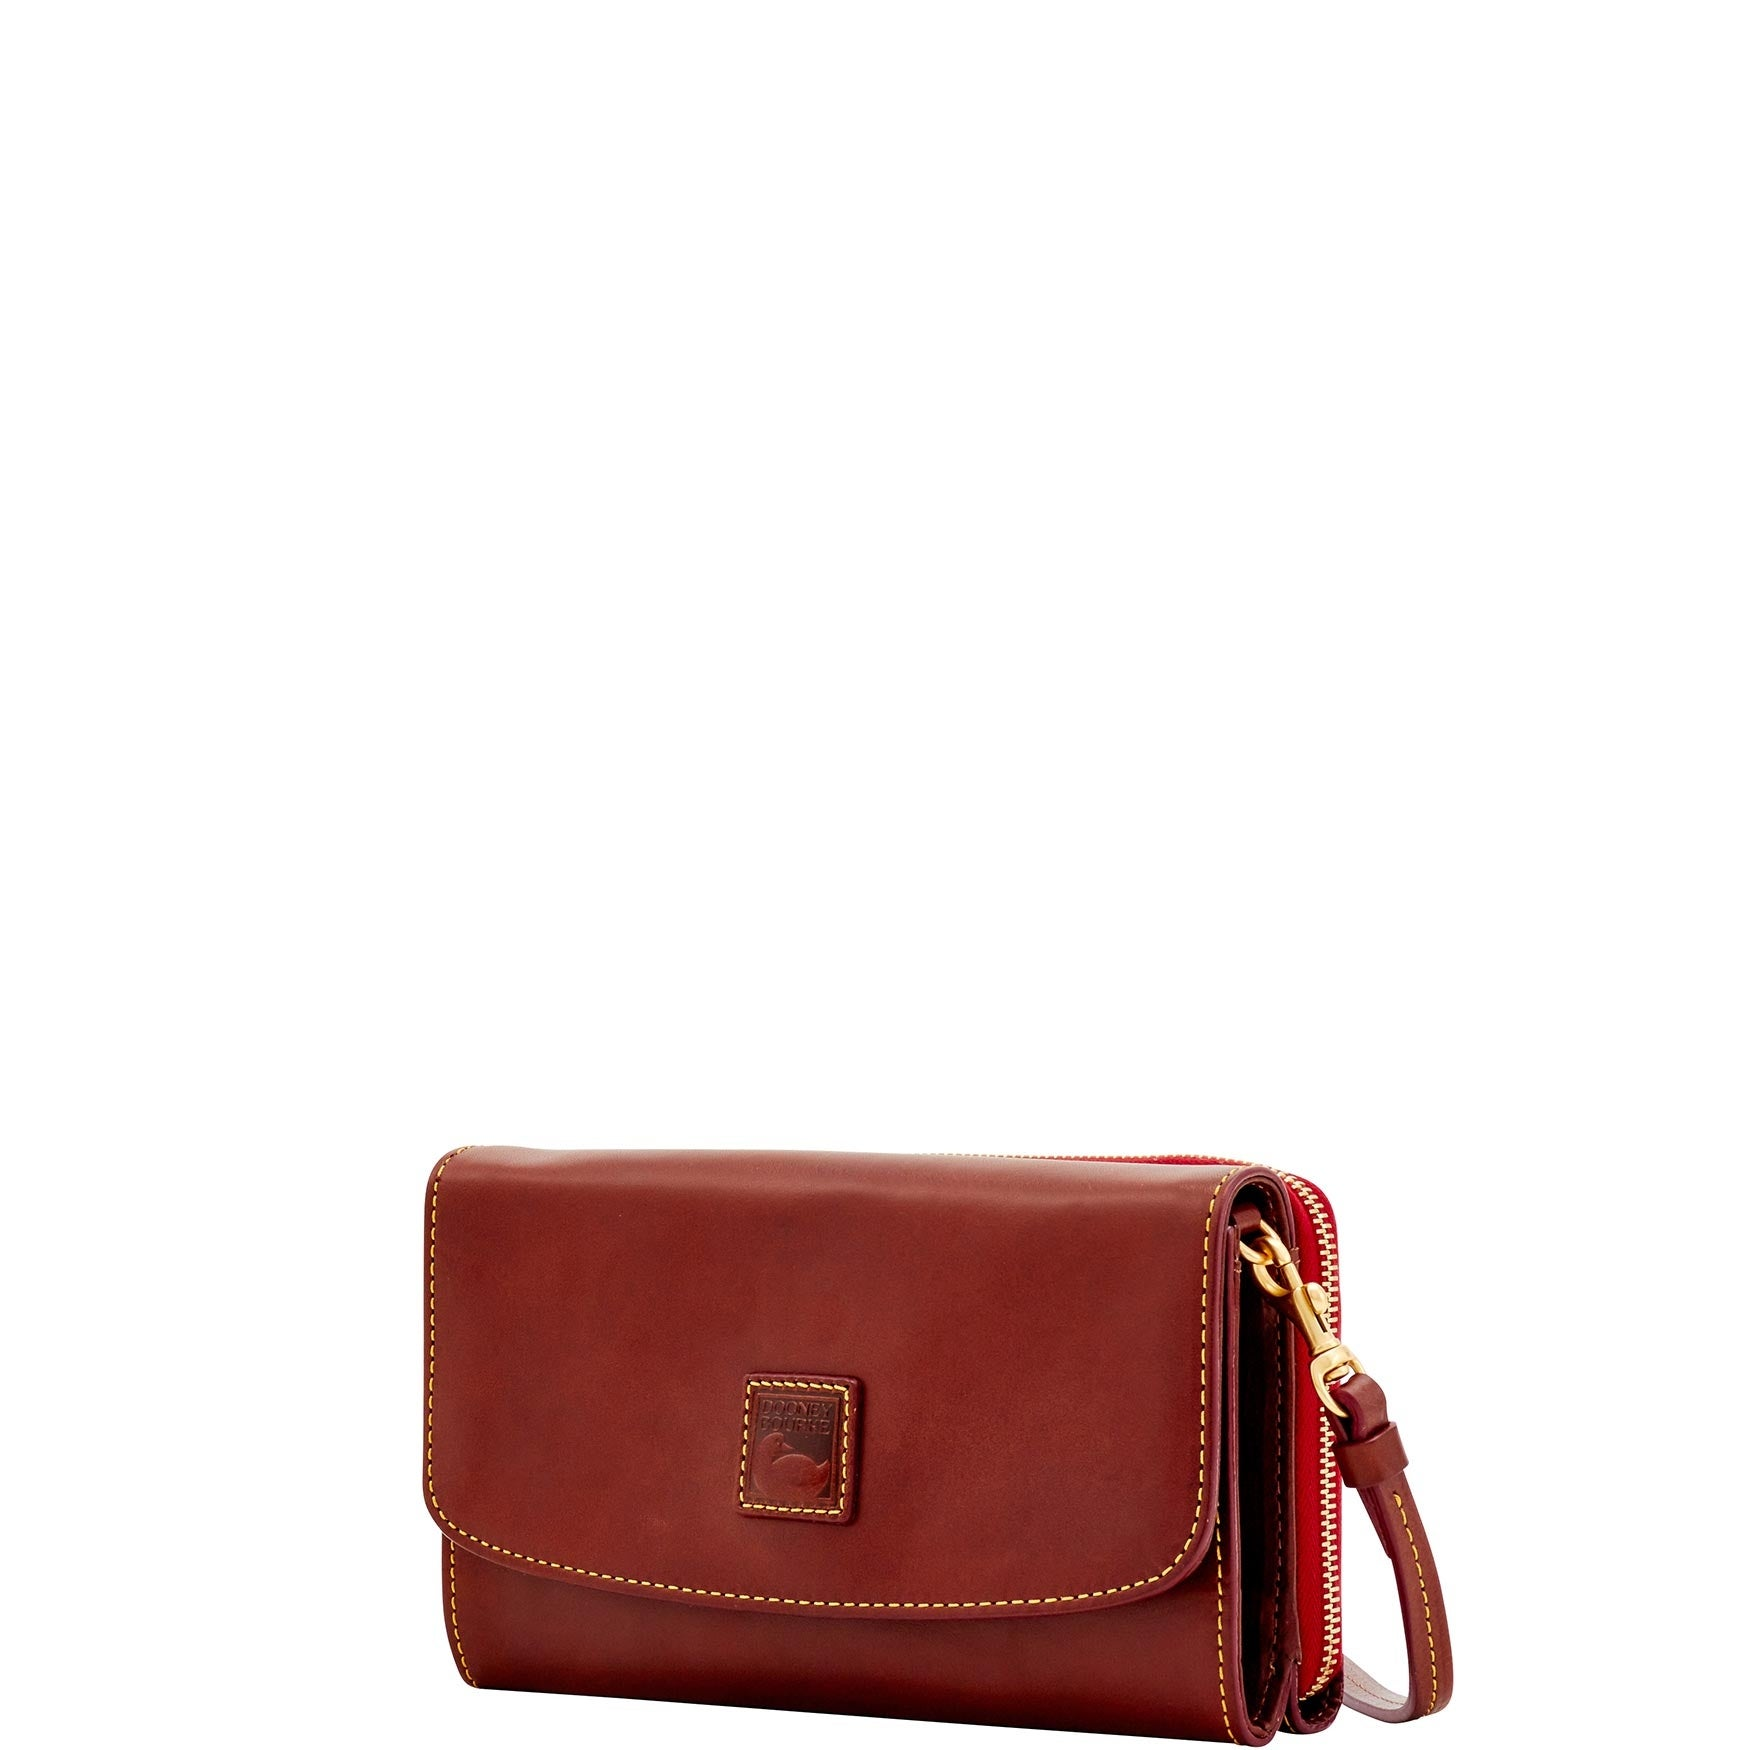 4e29b3352 Shop Dooney & Bourke Florentine Clutch Wallet Wallet (Introduced by Dooney  & Bourke at $198 in Aug 2017) - Free Shipping Today - Overstock - 17160927